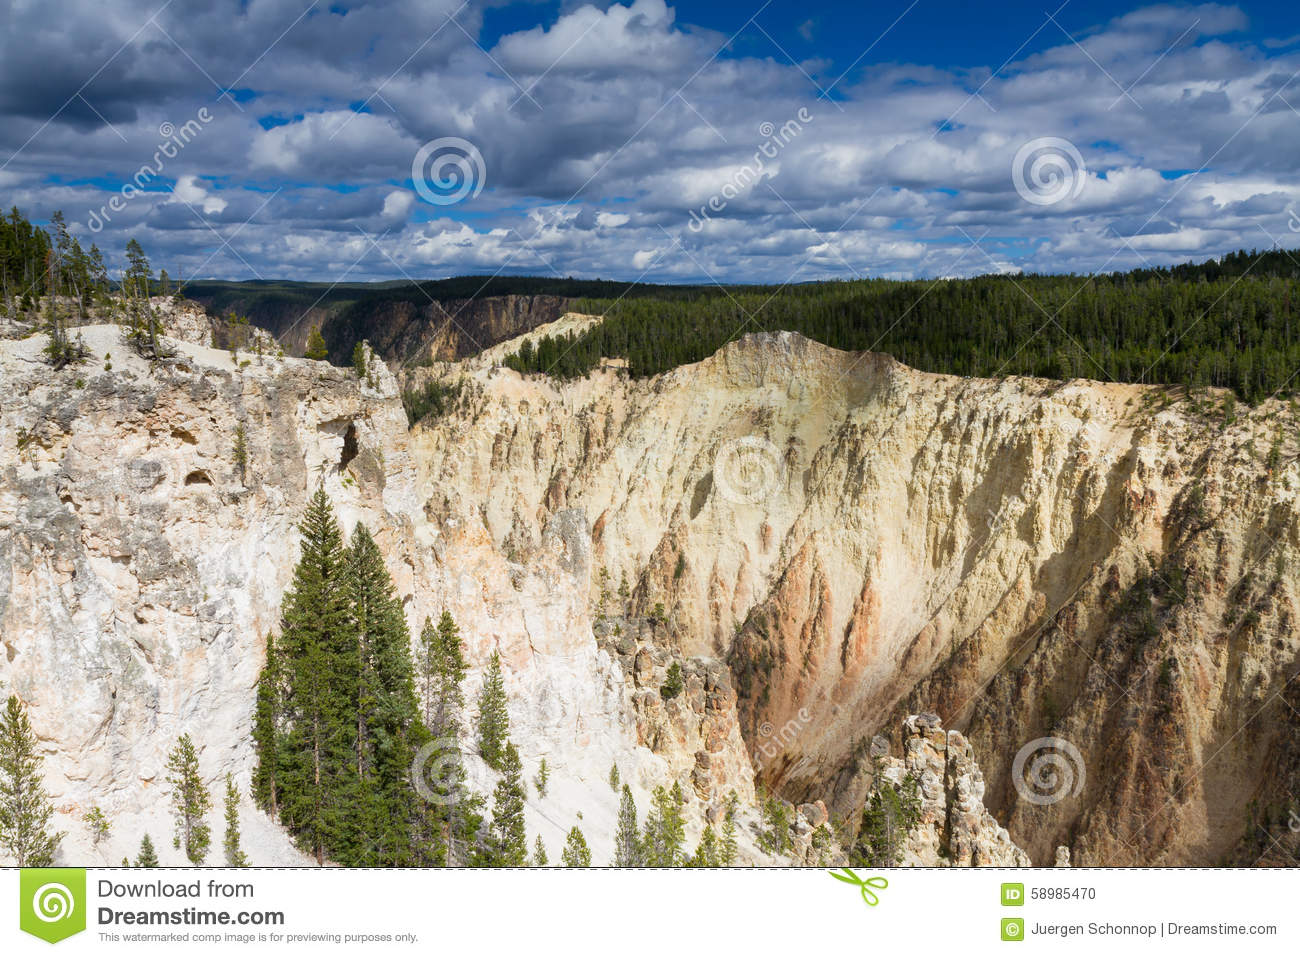 Yellowstone Canyon as seen from the Grand View lookout